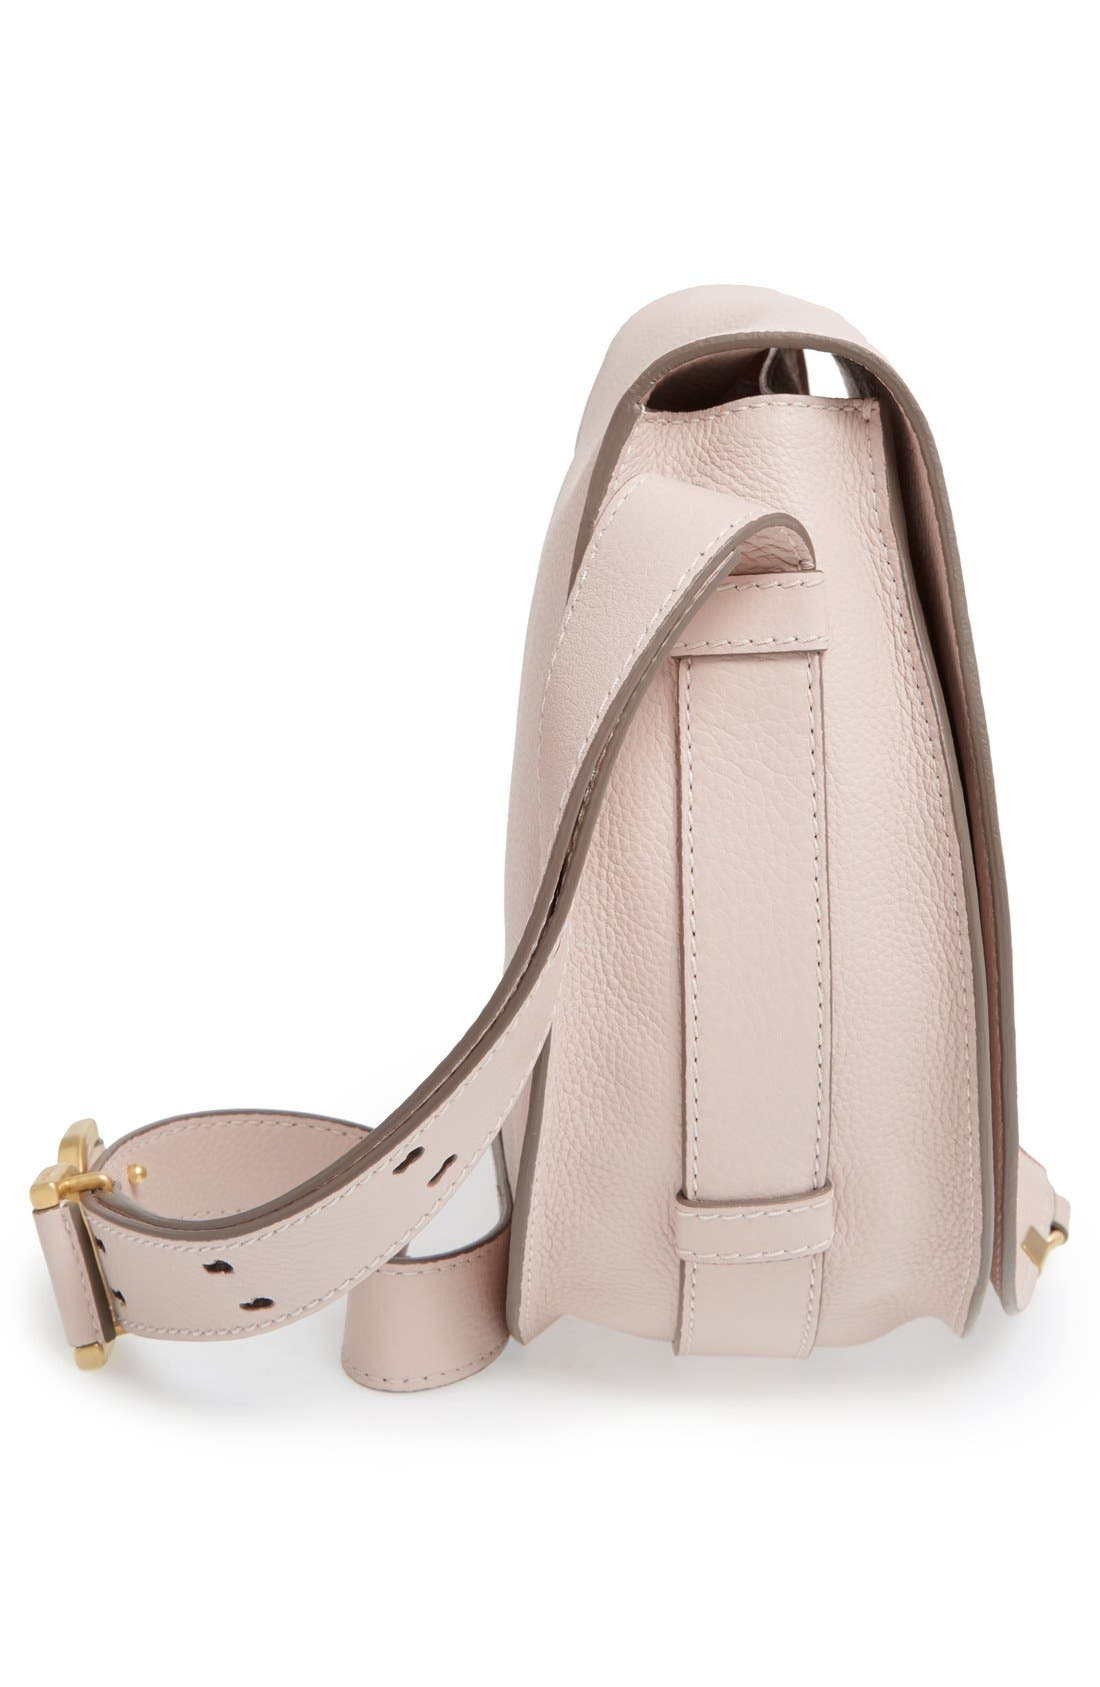 'Marcie - Medium' Leather Crossbody Bag,                             Alternate thumbnail 5, color,                             Abstract White